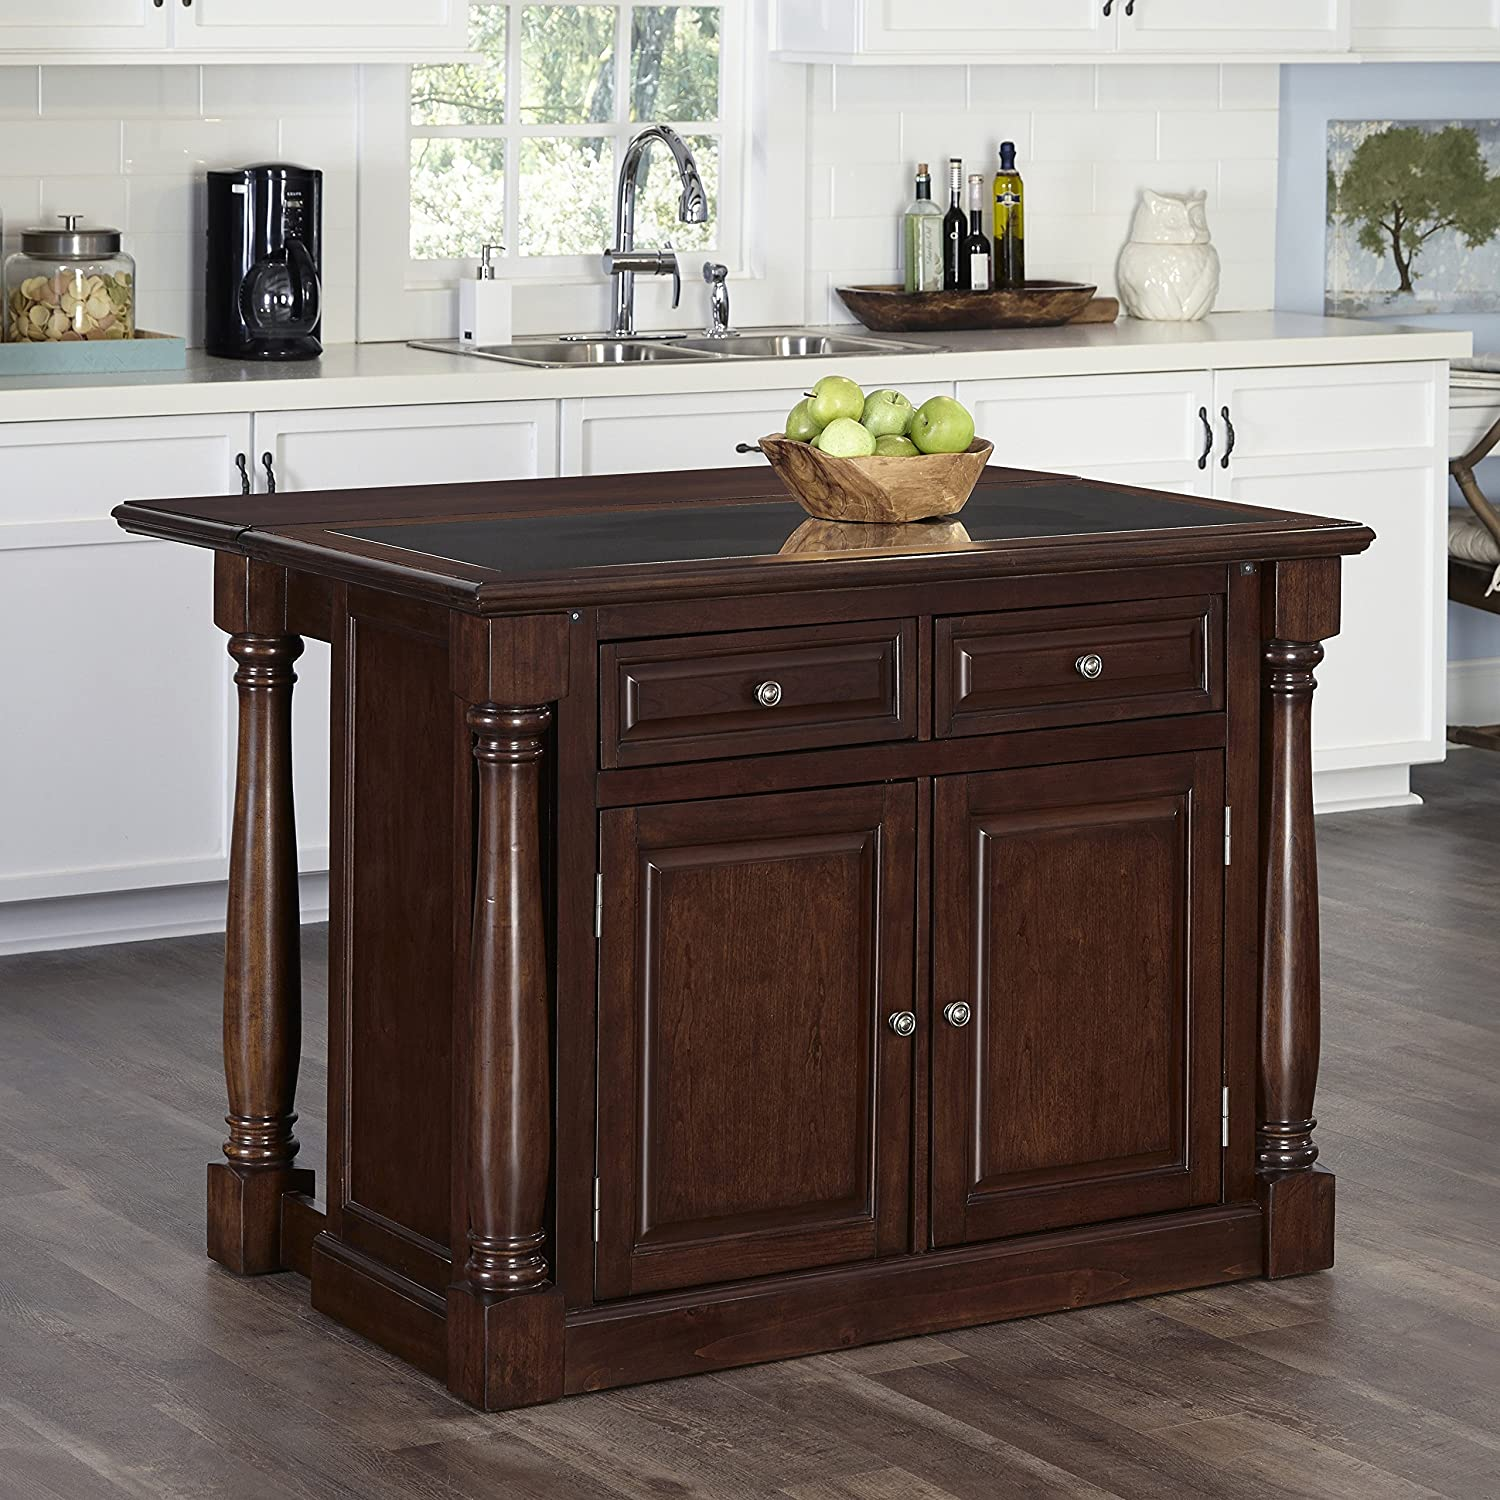 Amazon Home Styles 5007 945 Monarch Kitchen Island with